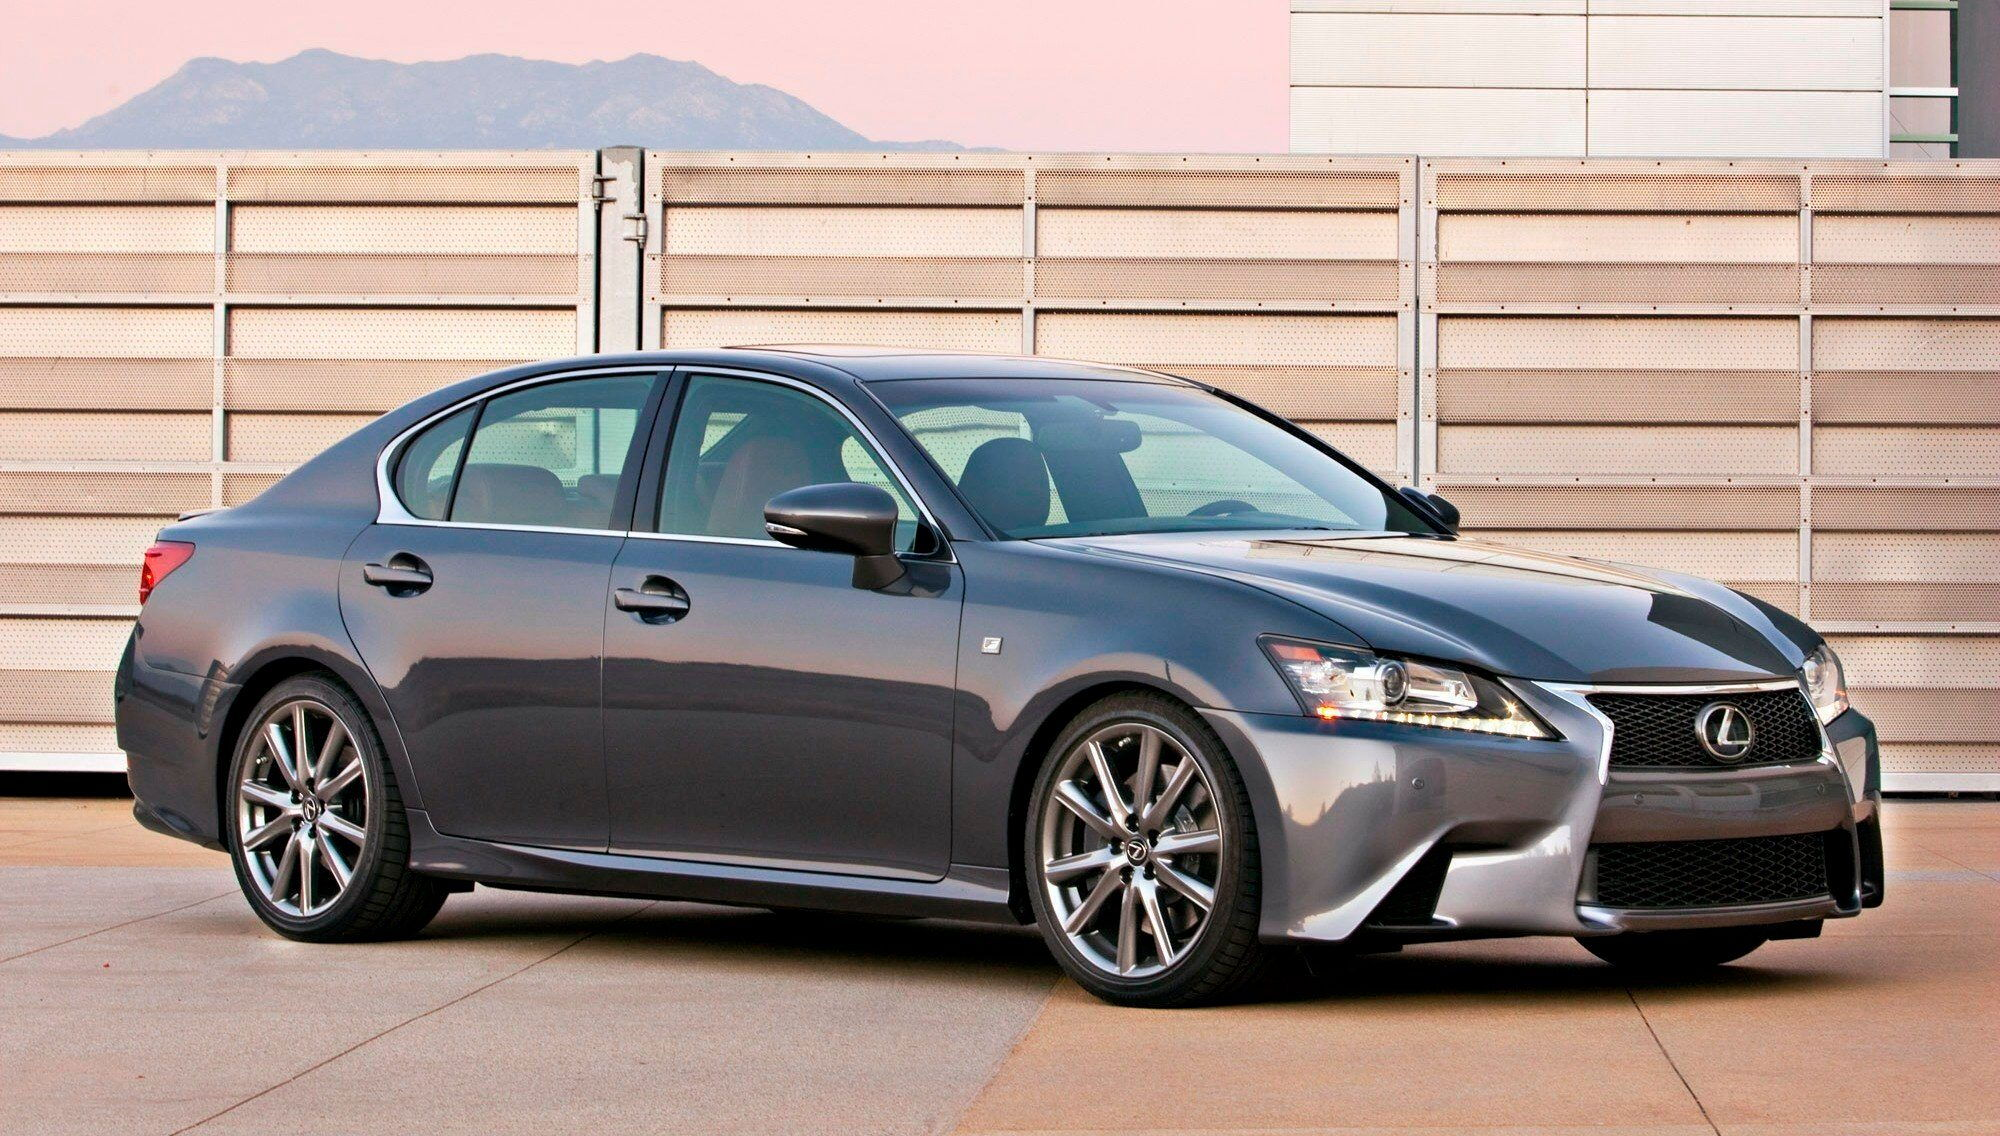 Gs sold 22k units http www goodcarbadcar net 2011 01 s figures html q70 sold 5k units http www goodcarbadcar net 2014 01 sa canada html